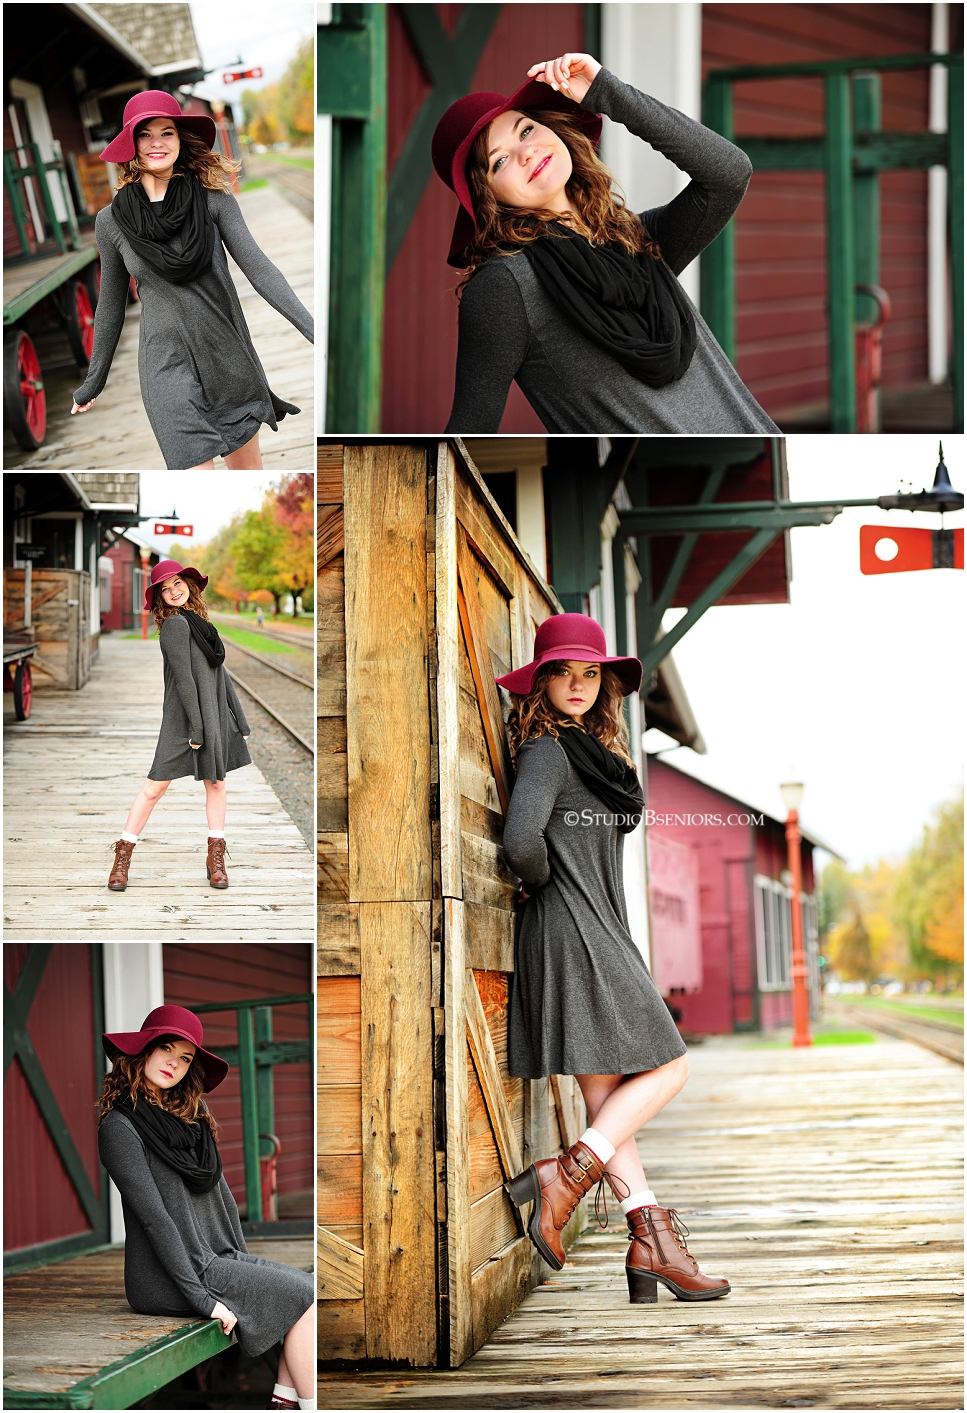 Fashion inspired senior pictures of pretty girl in floppy hat near train station_0231.jpg